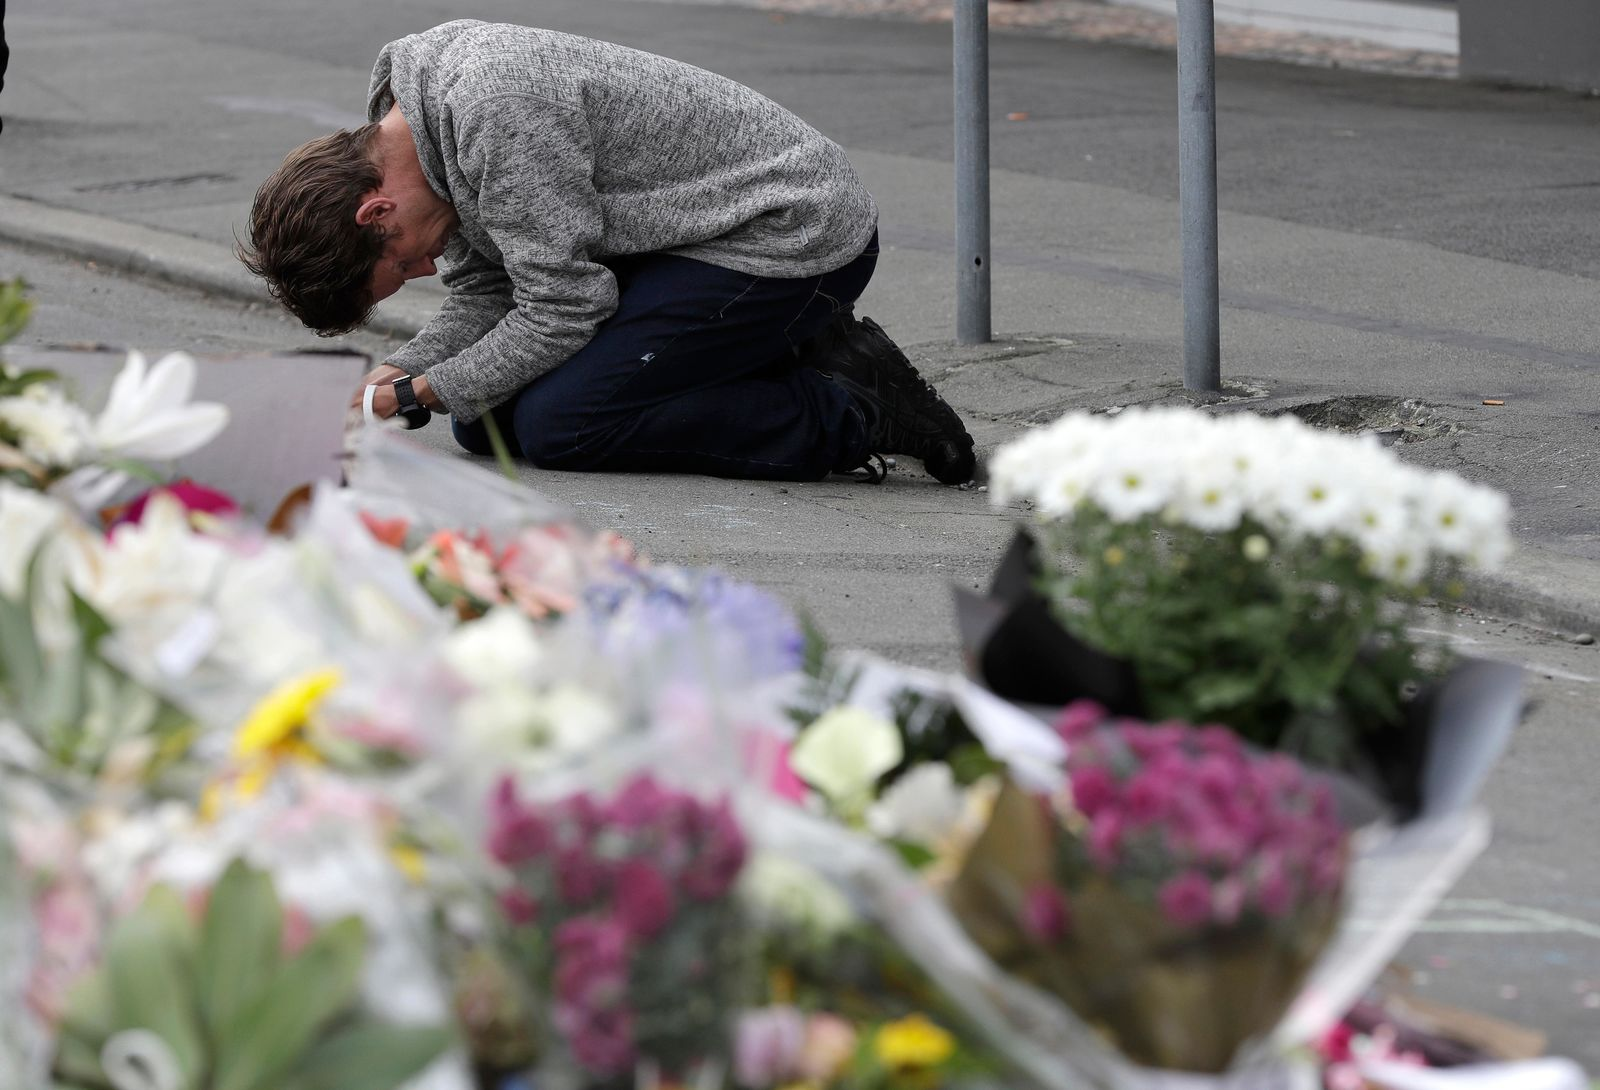 A mourner prays near the Linwood mosque in Christchurch, New Zealand, Tuesday, March 19, 2019. (AP Photo/Mark Baker)